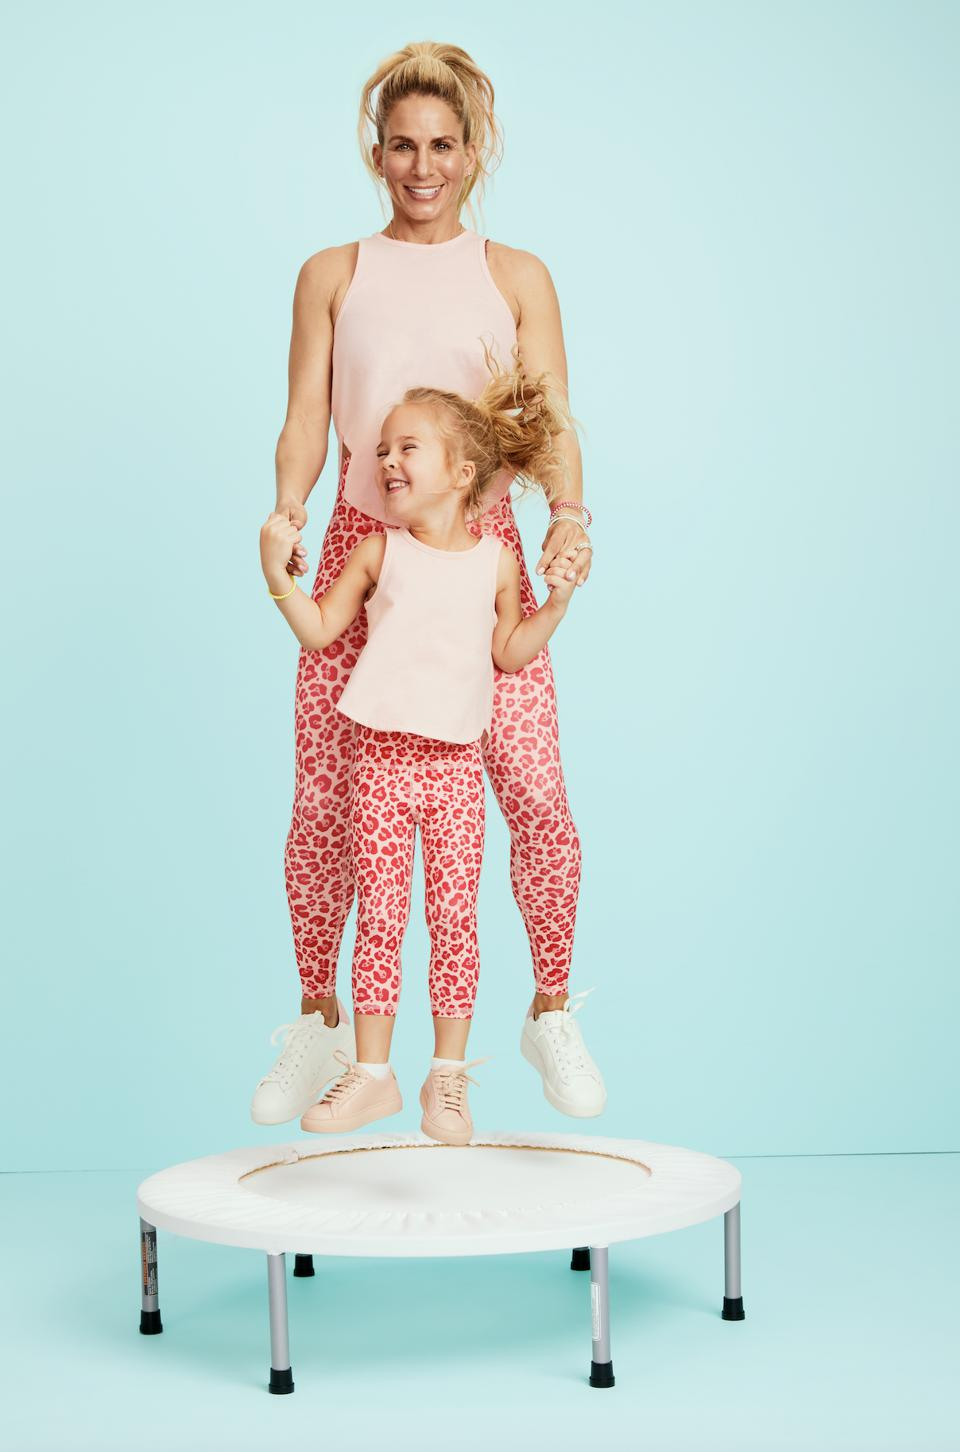 Fabletics 'Do Everything' Outfit from the Mother-Daughter Capsule Collection